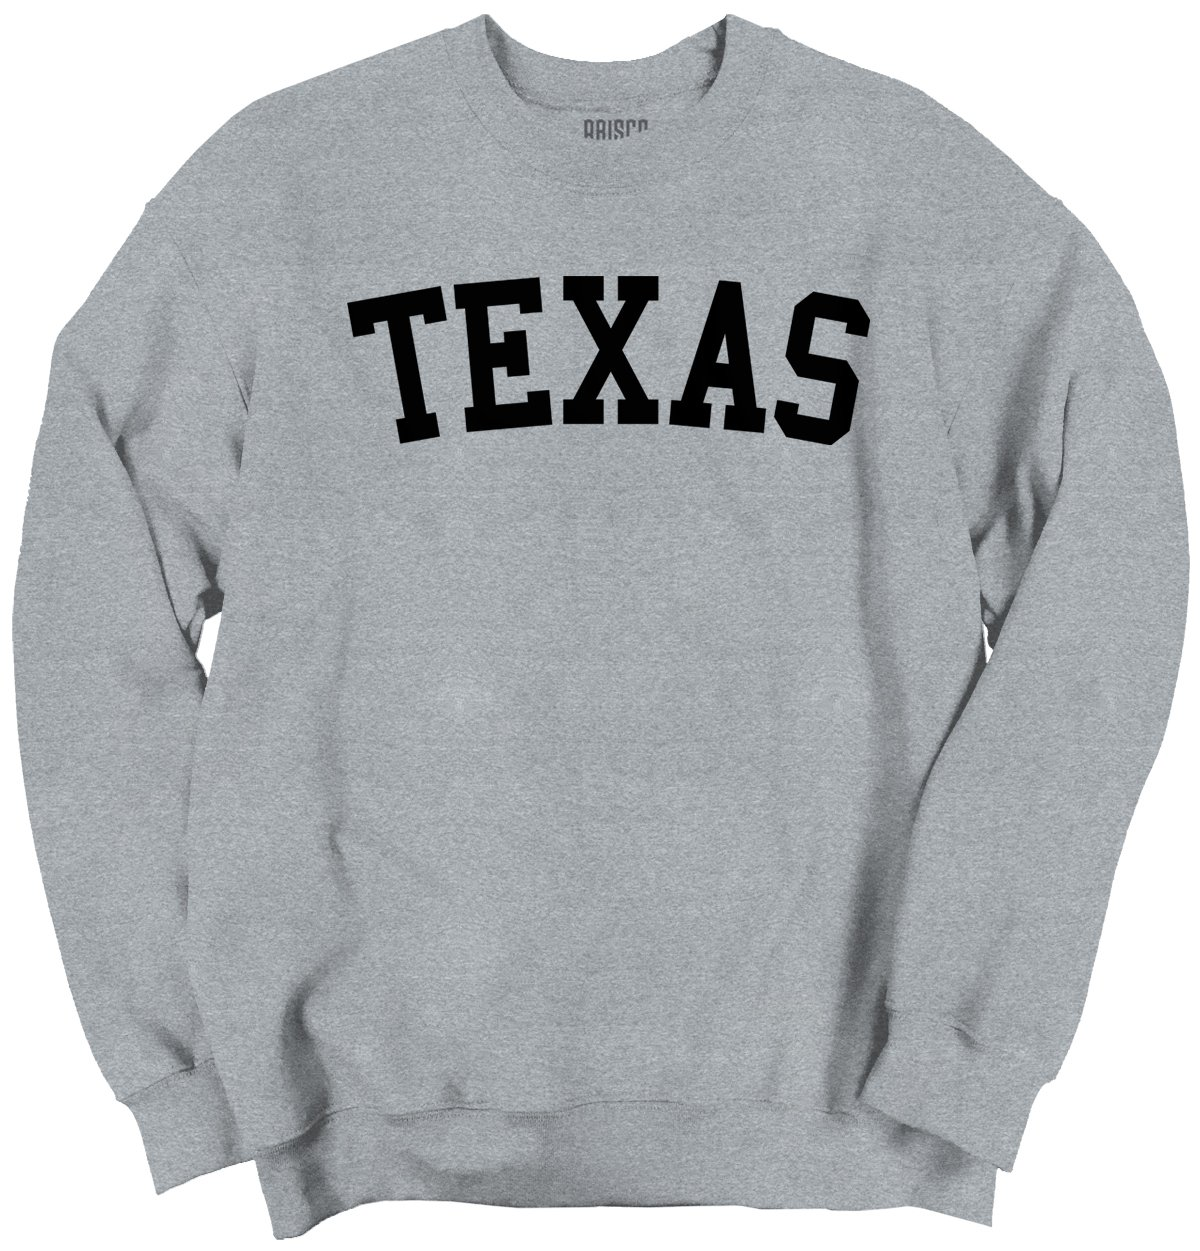 Texas State Shirt Athletic Wear USA T Novelty Gift Ideas Cool Sweatshirt